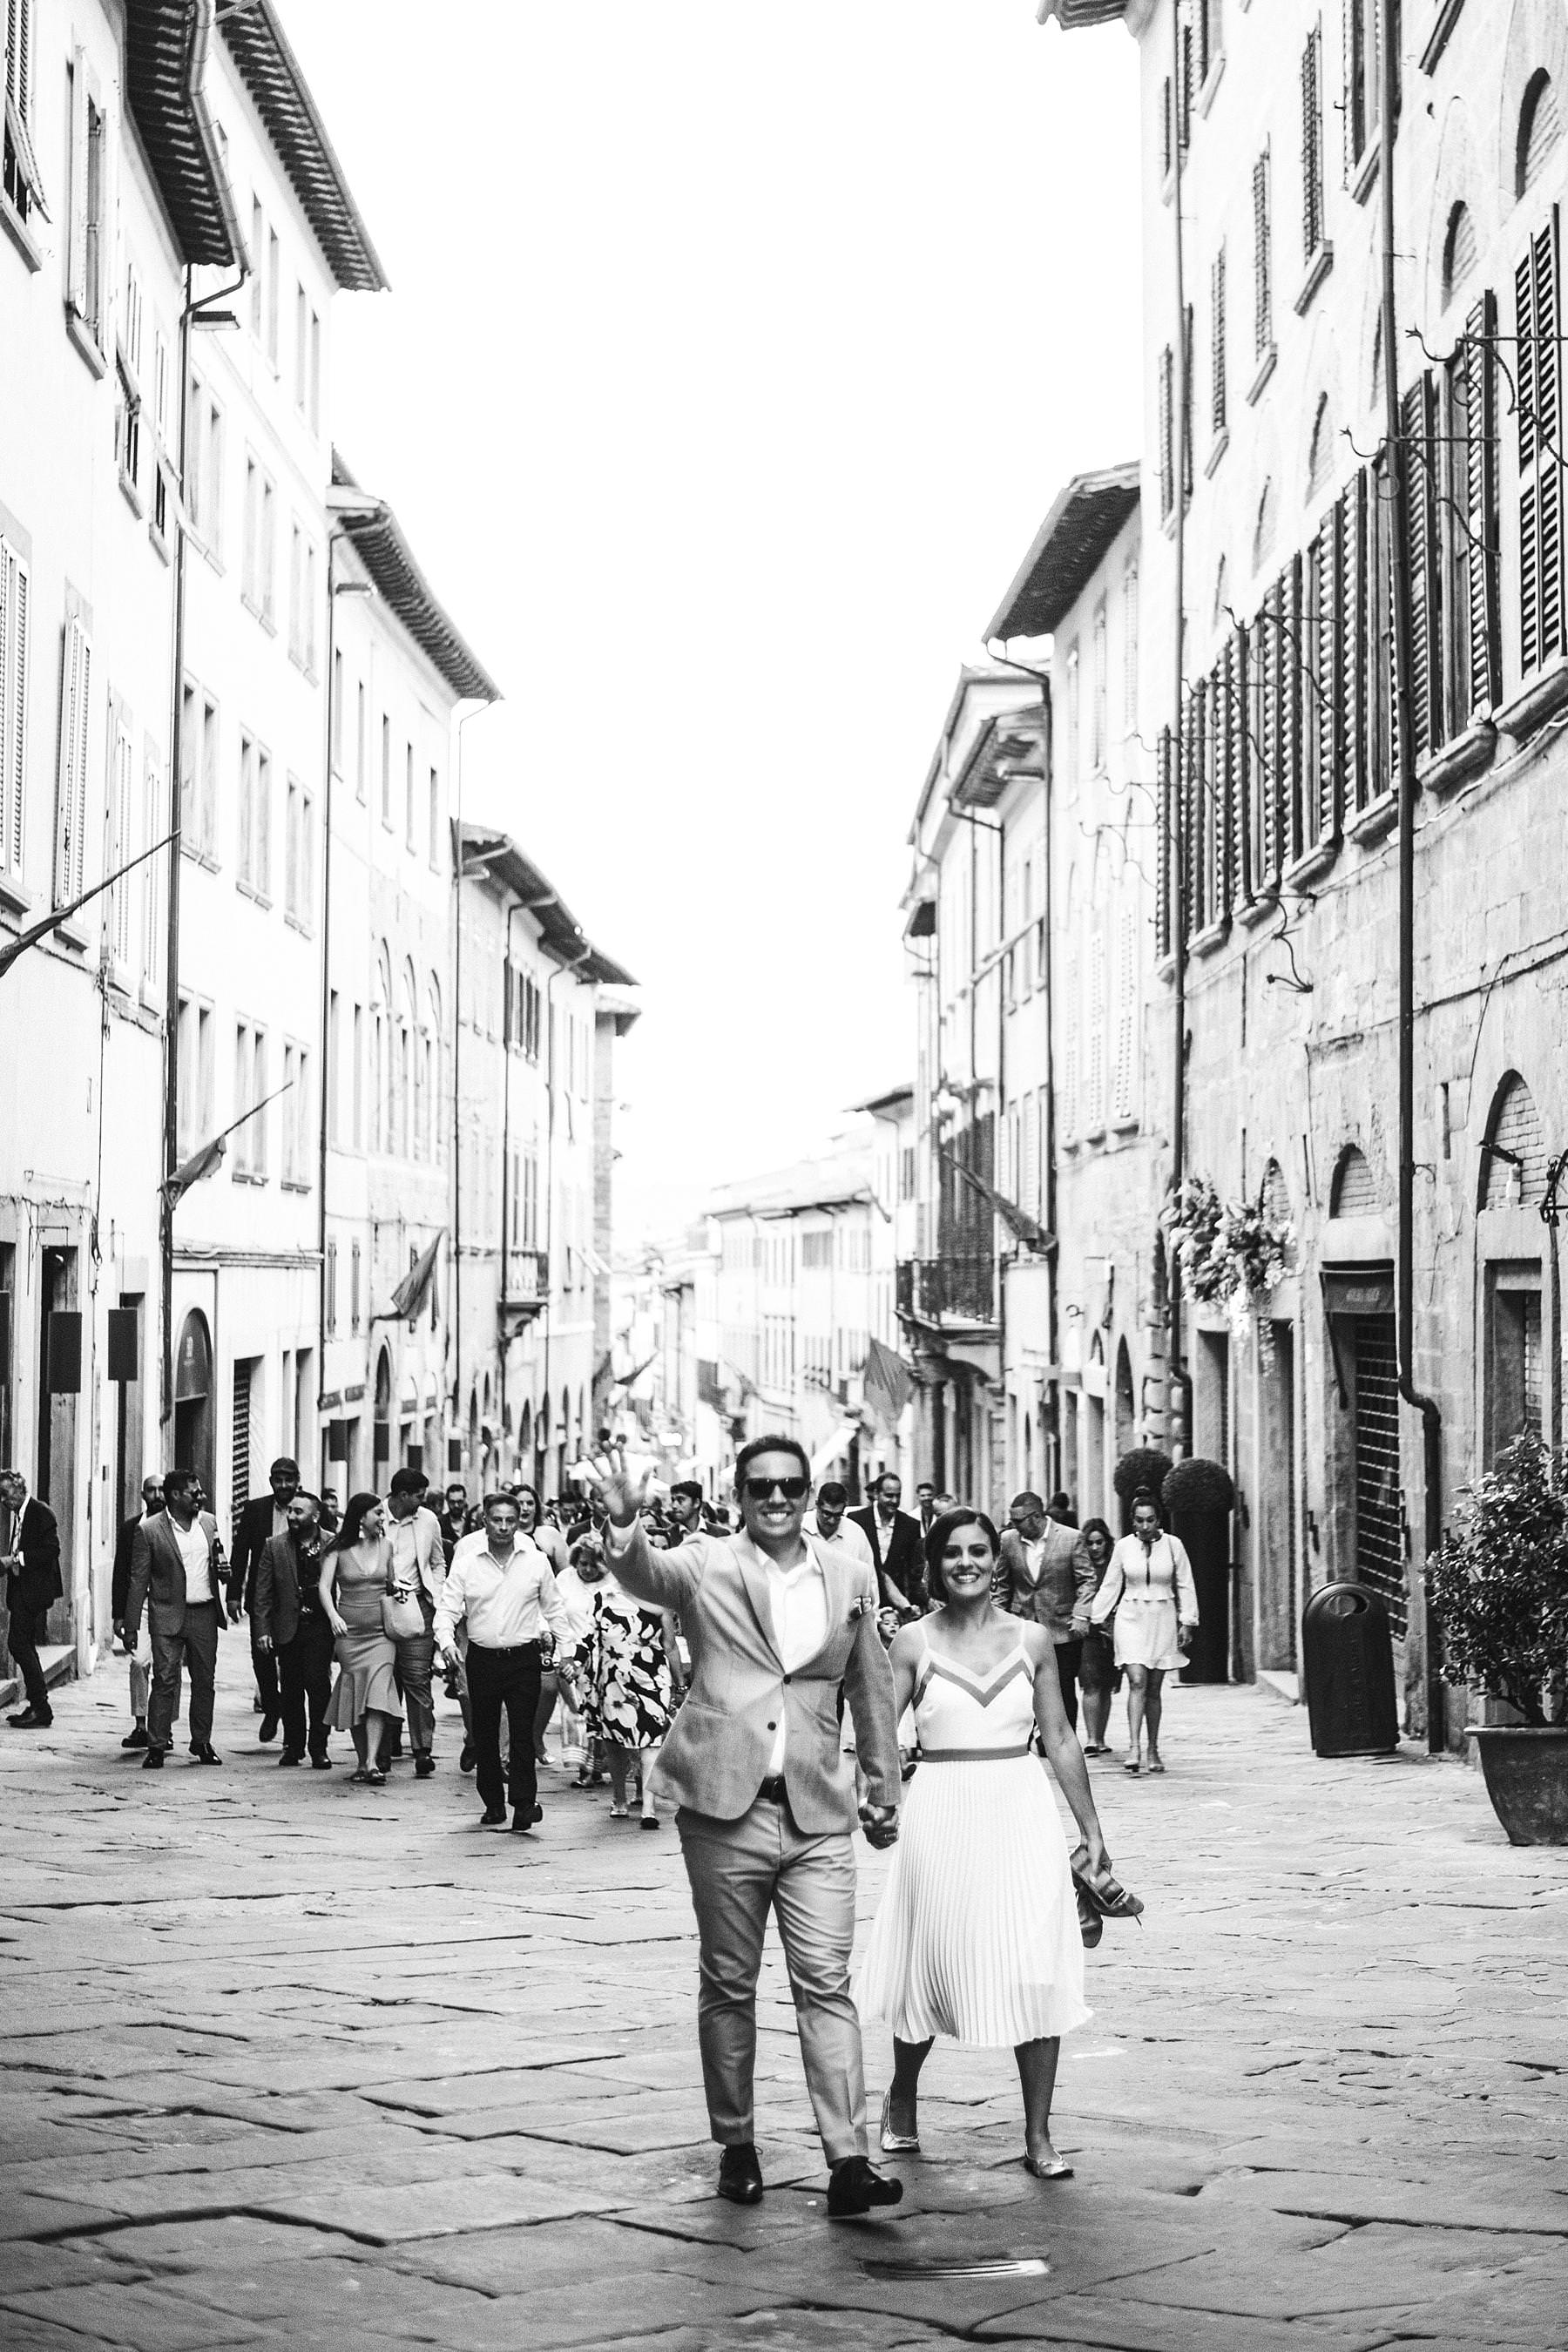 Destination wedding in Tuscany. Bride and groom welcome dinner in Arezzo at Piazza Grande